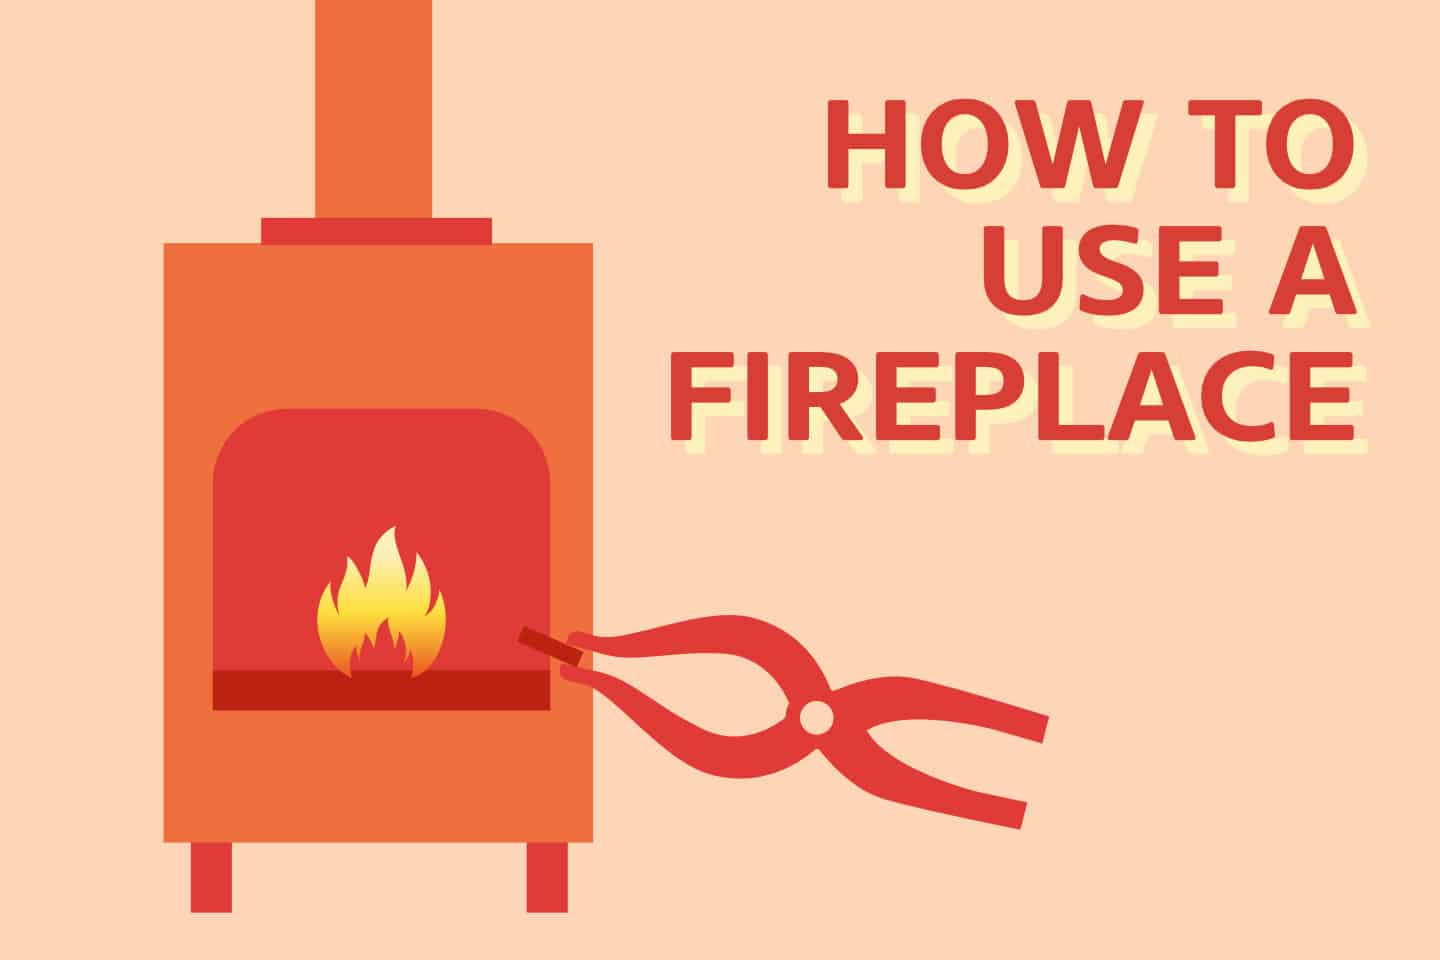 How To Properly Use A Fireplace (Step-By-Step)